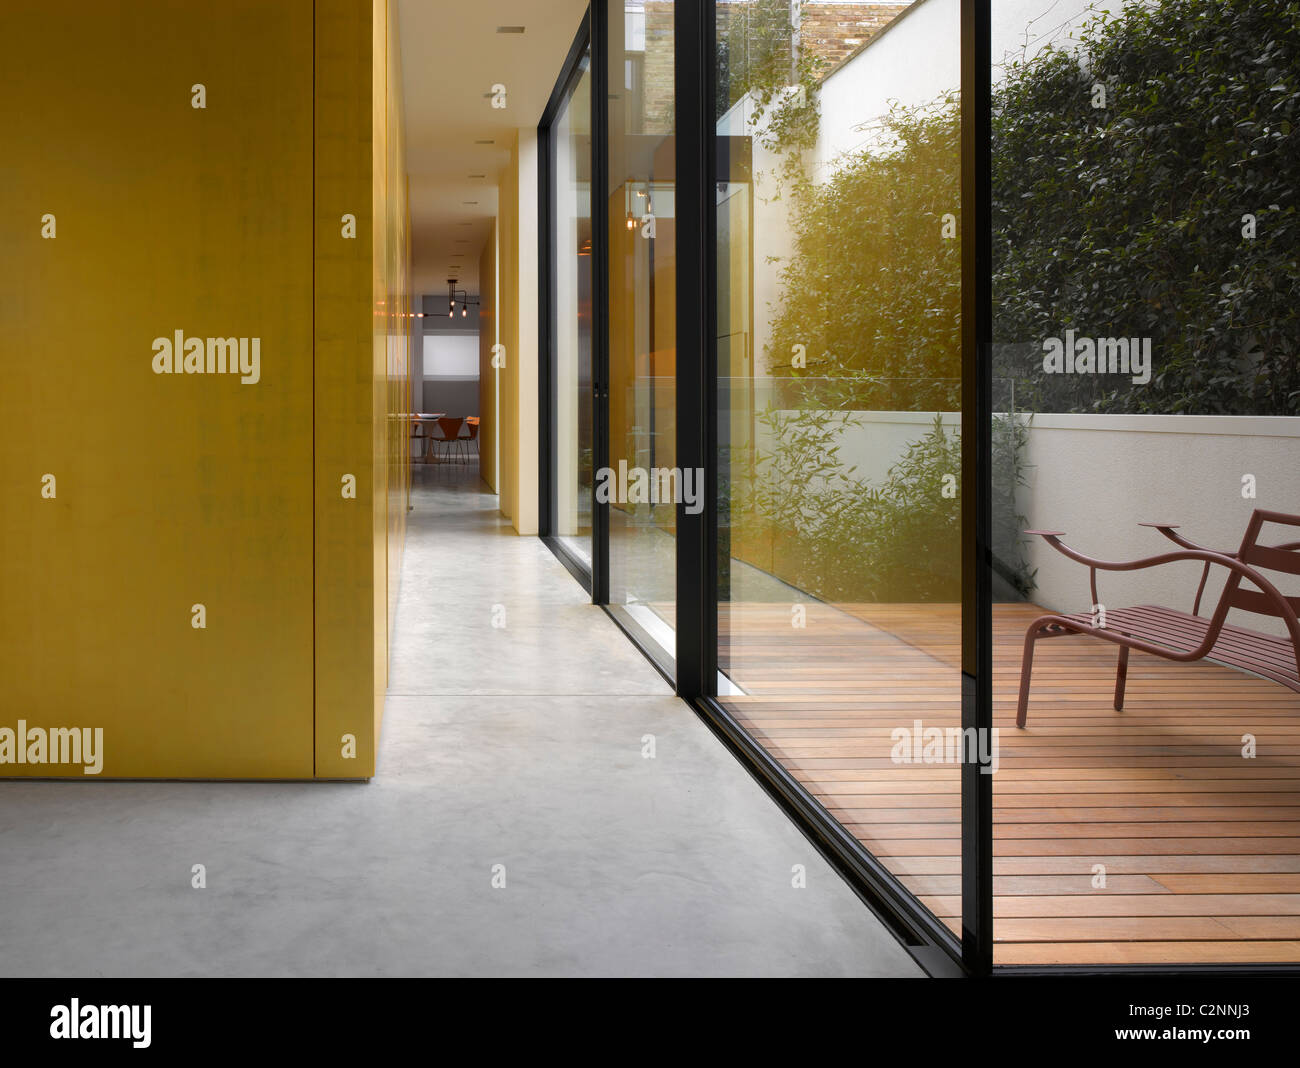 Brilliant Narrow House London Inside Outside With Sliding Picture Download Free Architecture Designs Scobabritishbridgeorg